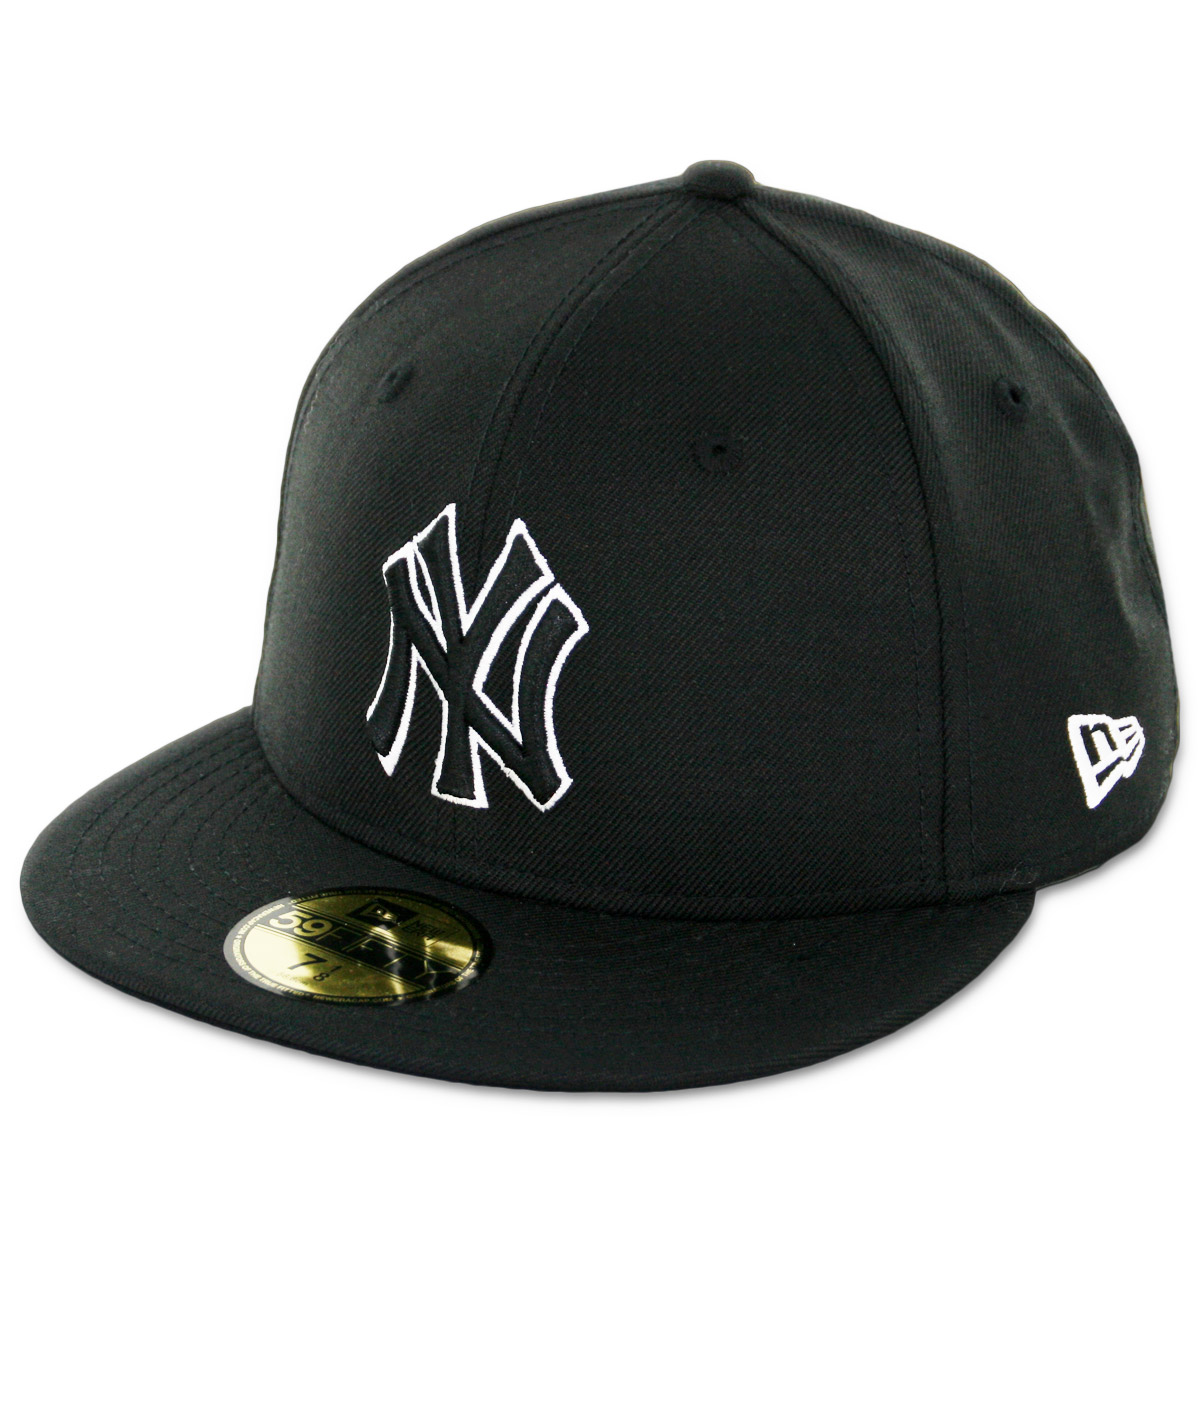 New Era 59Fifty New York Yankees Fitted Black c8ee6827cca